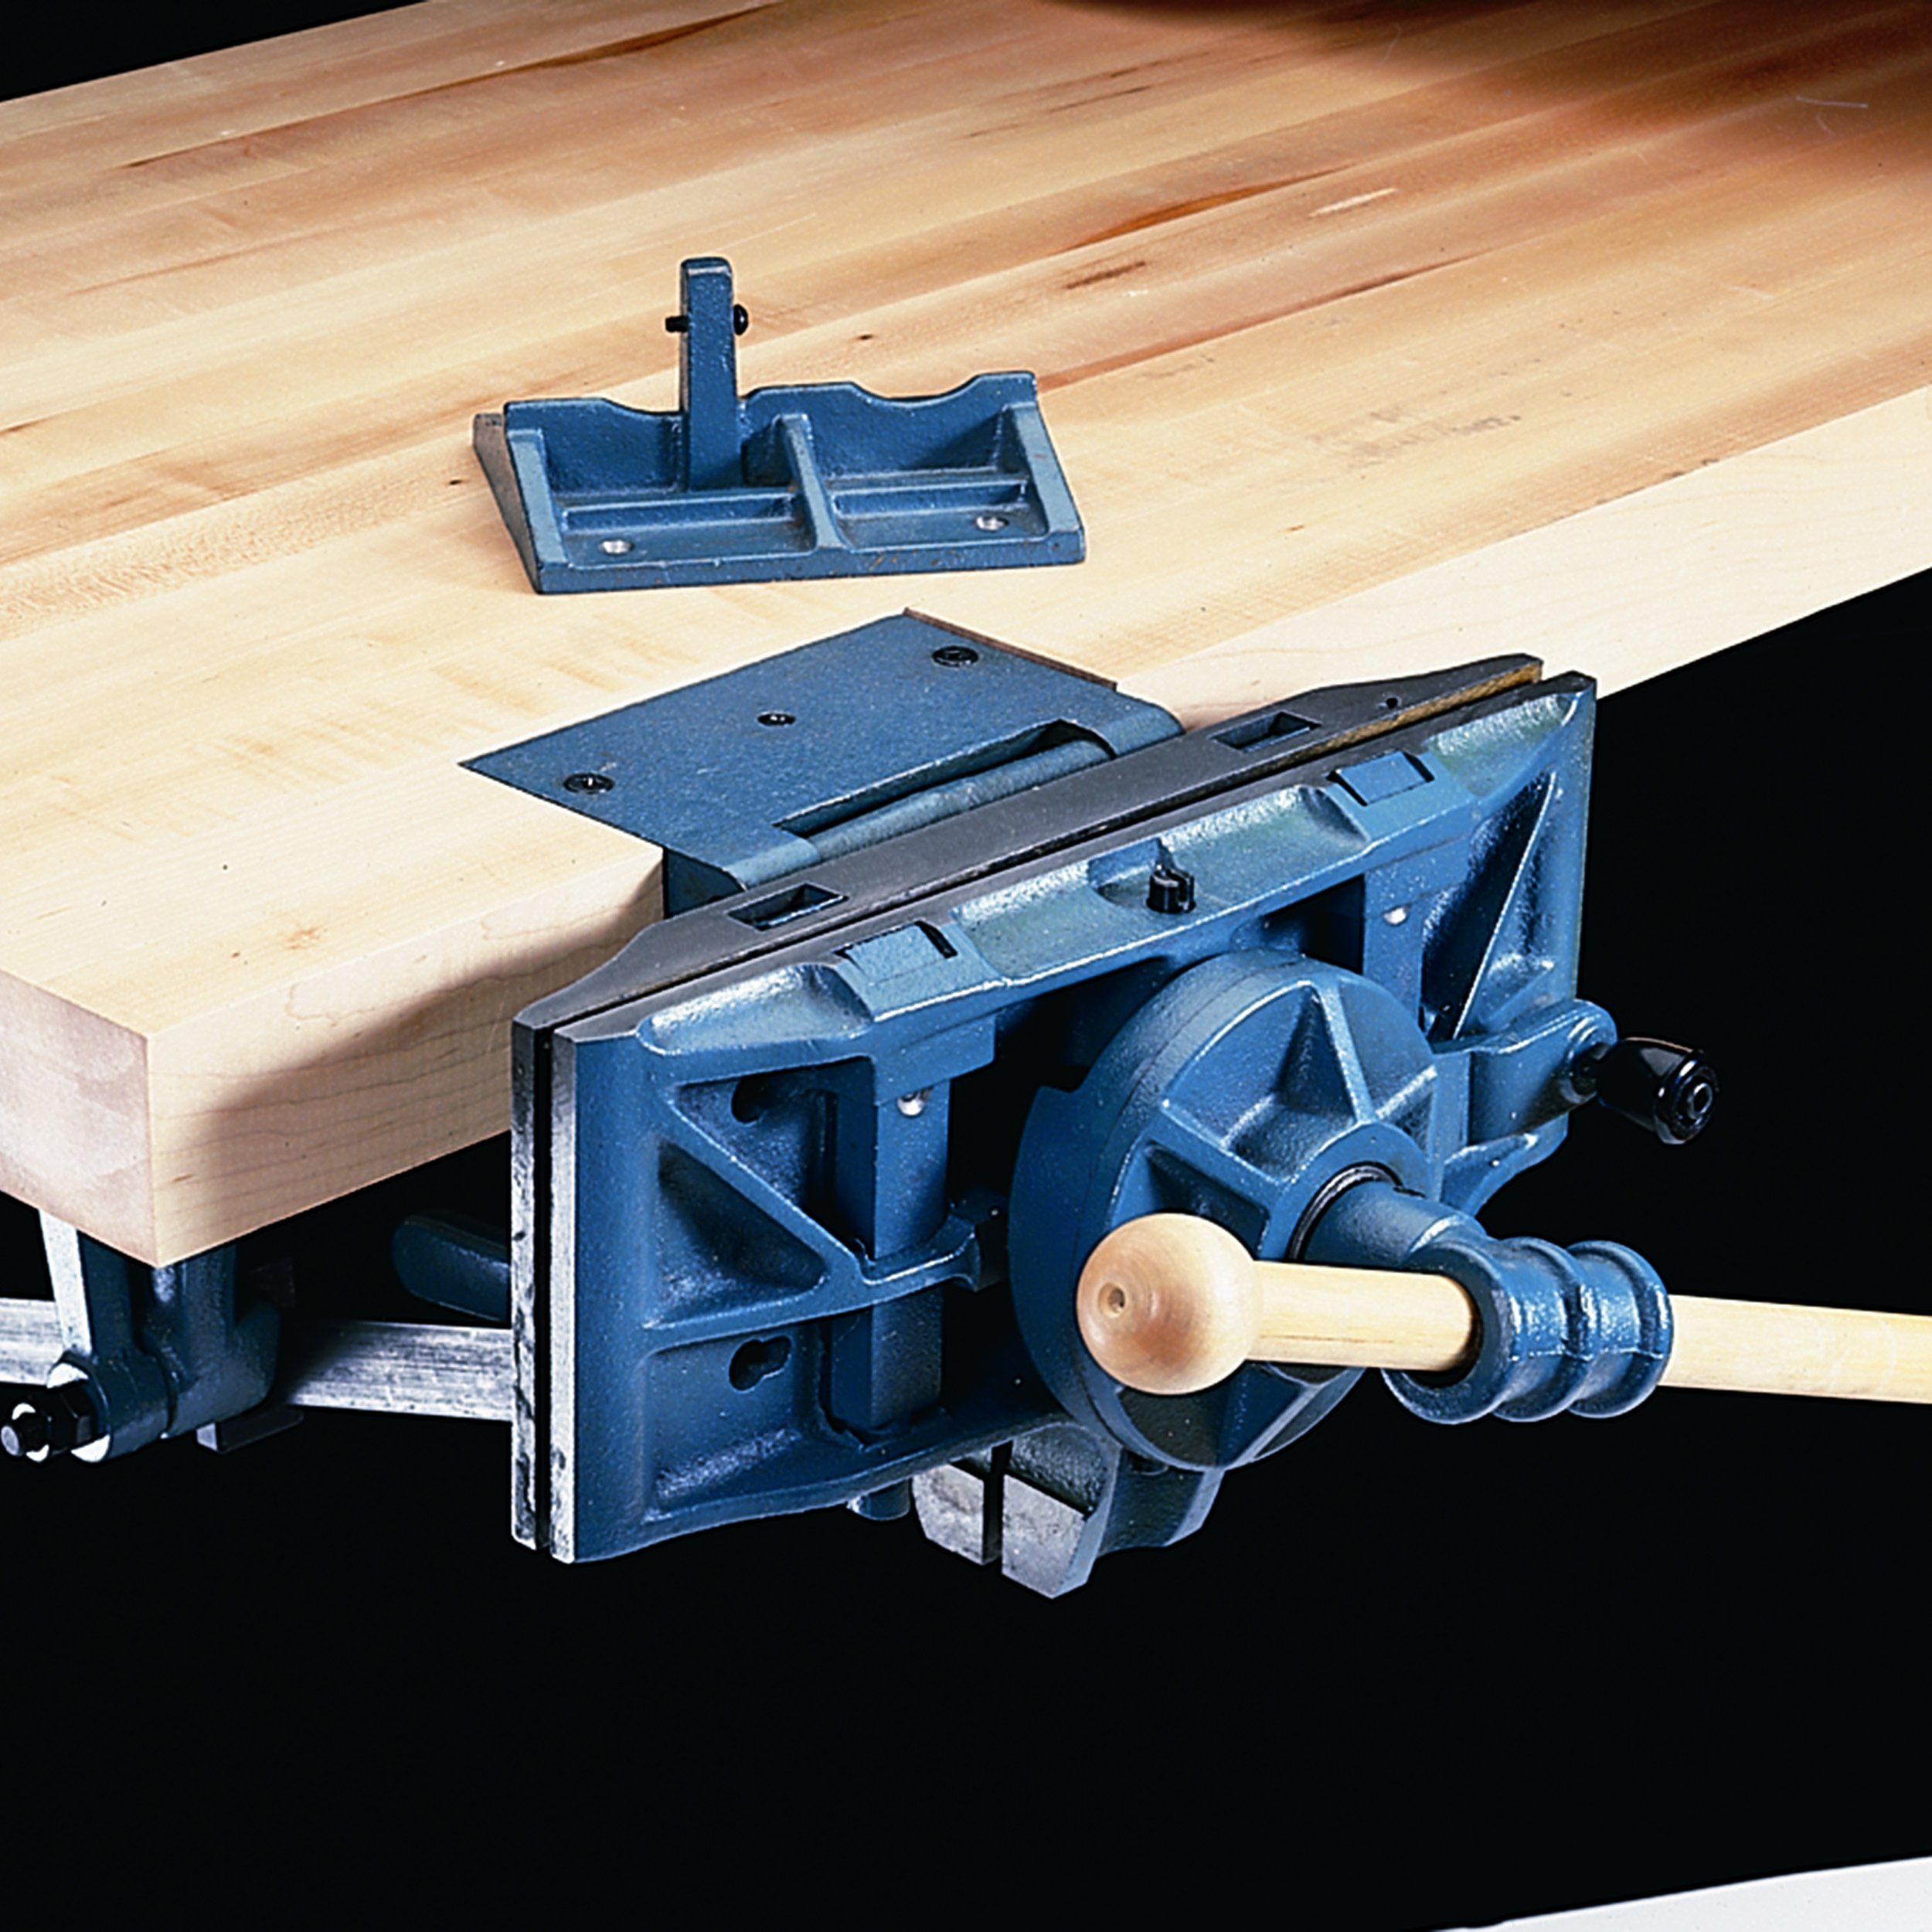 WoodRiver Pattern Maker's Vise by WoodRiver